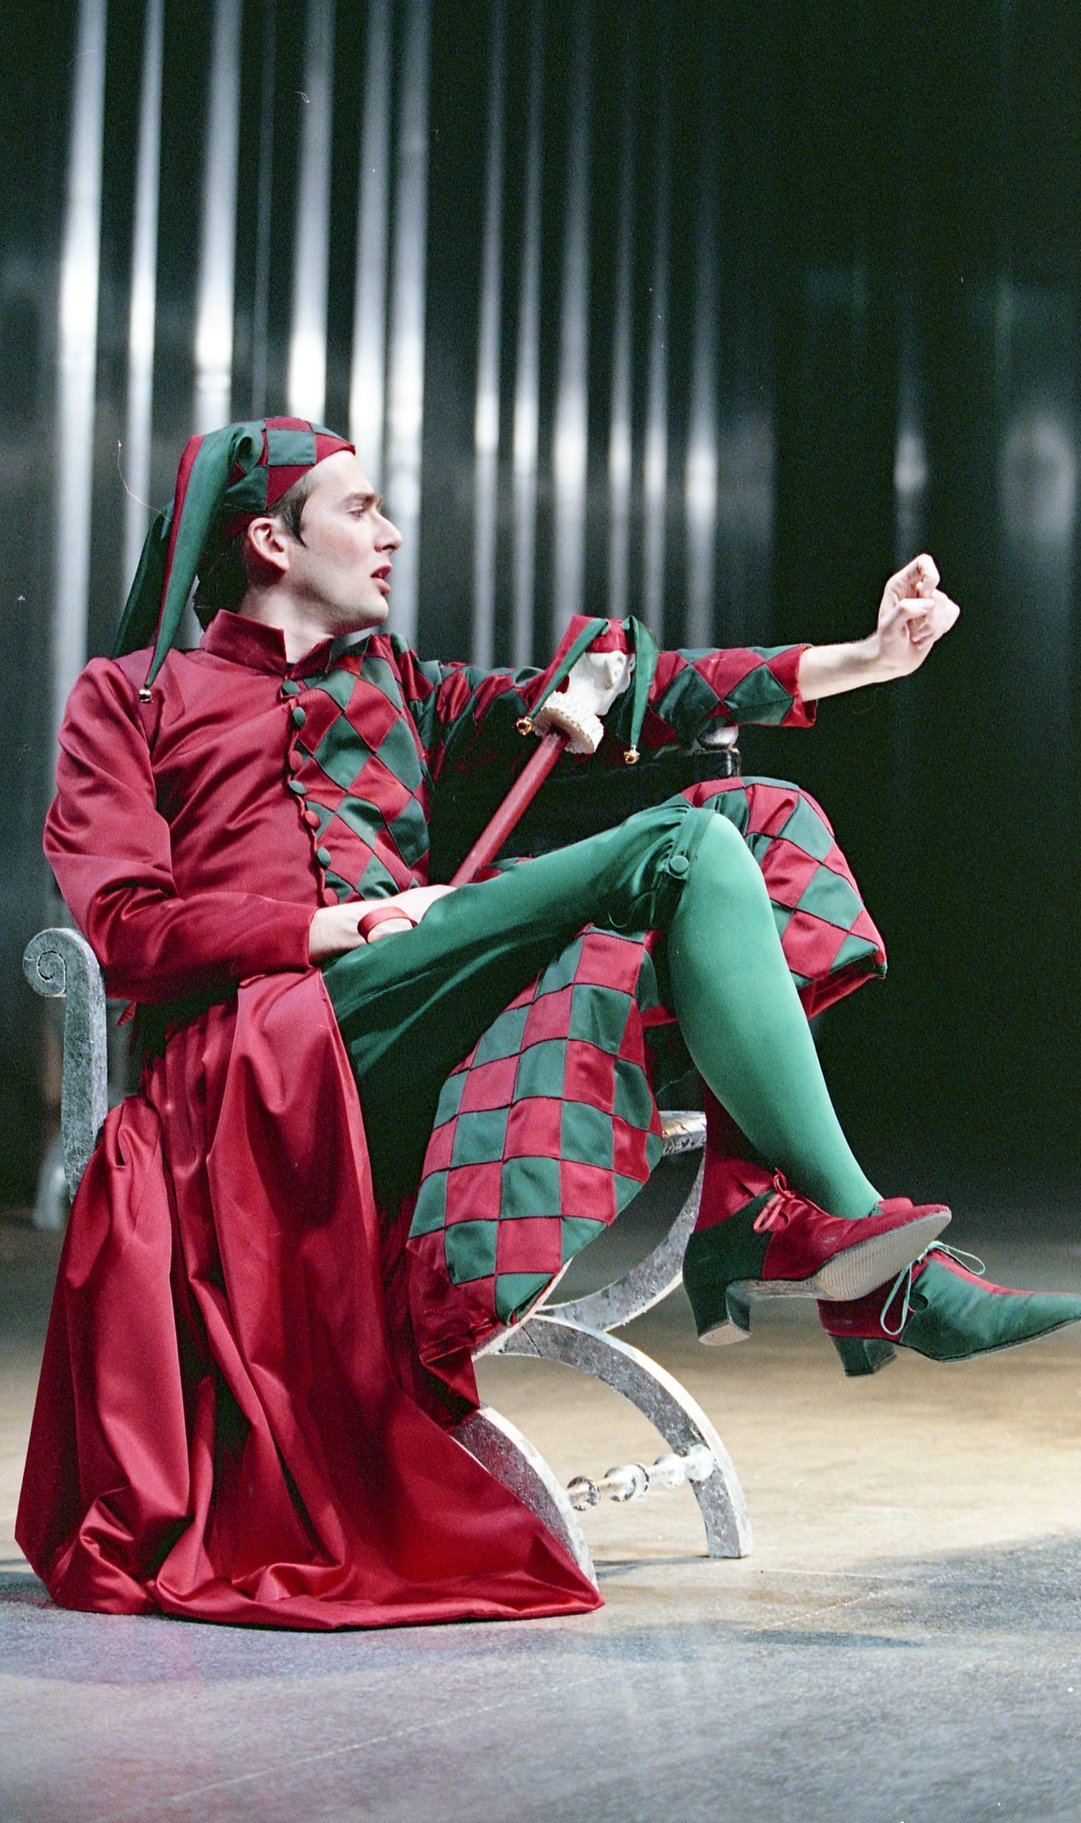 A man in a red and green jester's outfit.